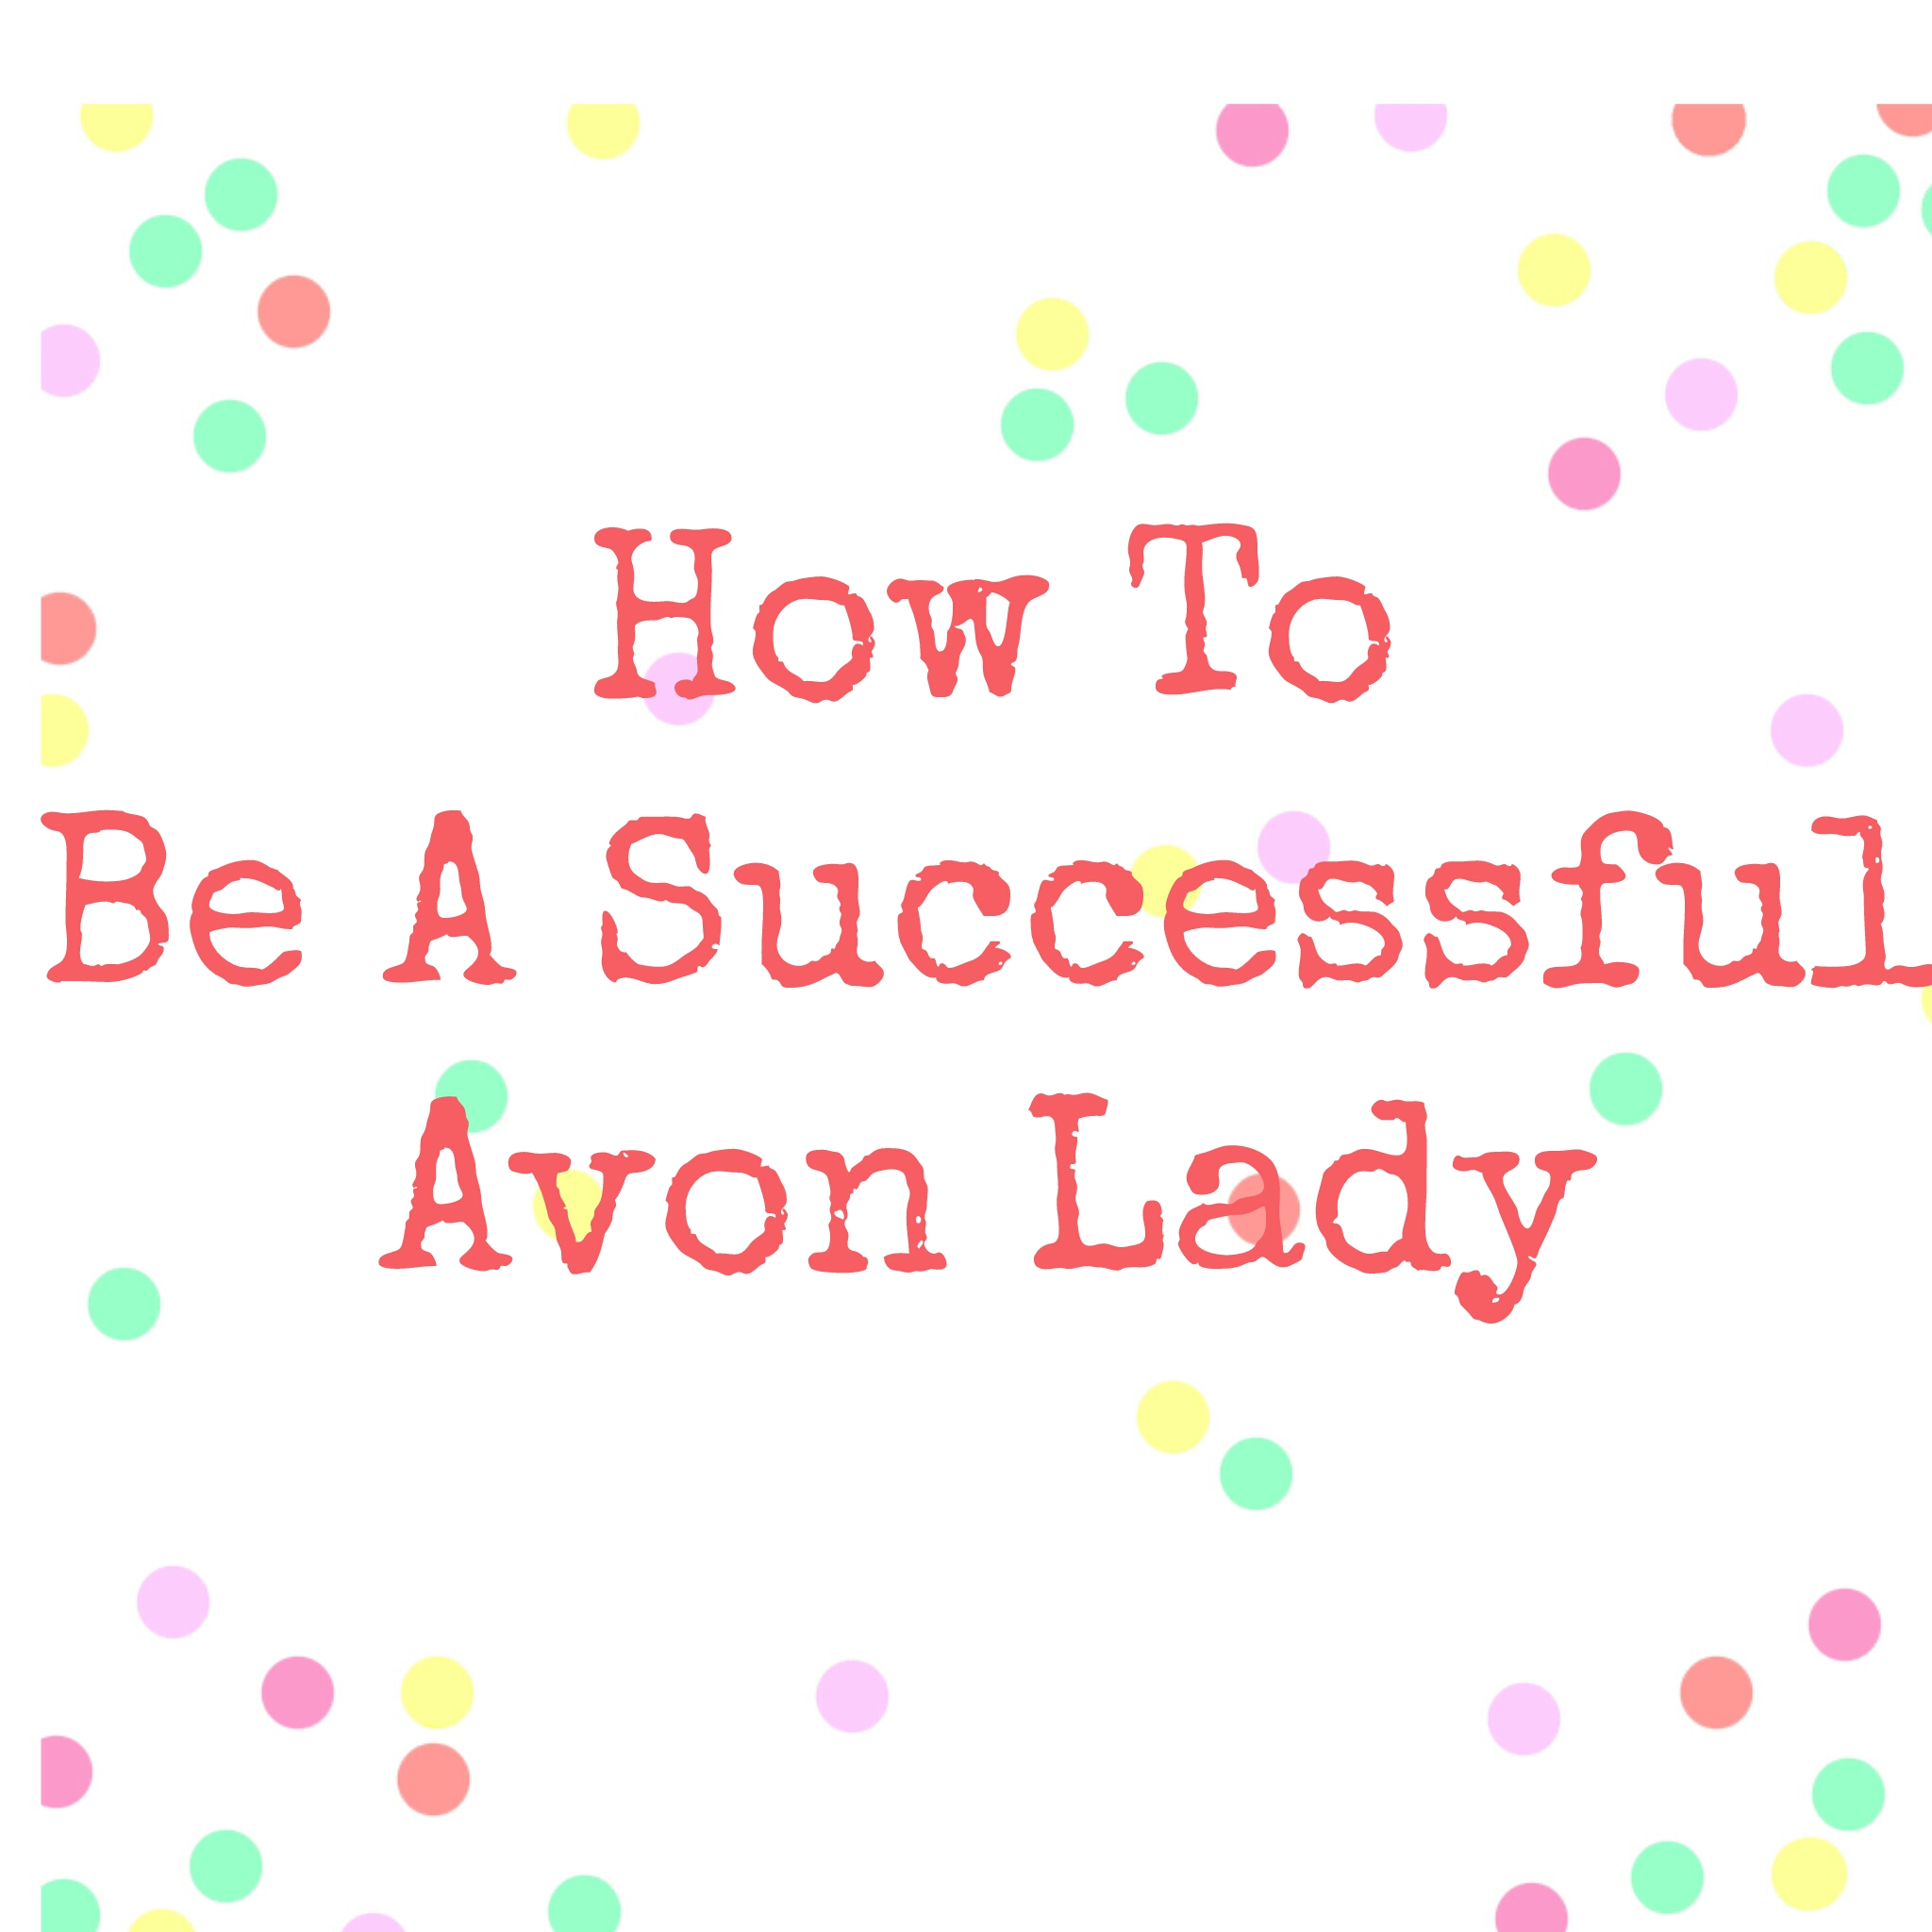 How to Be a Successful Avon Lady